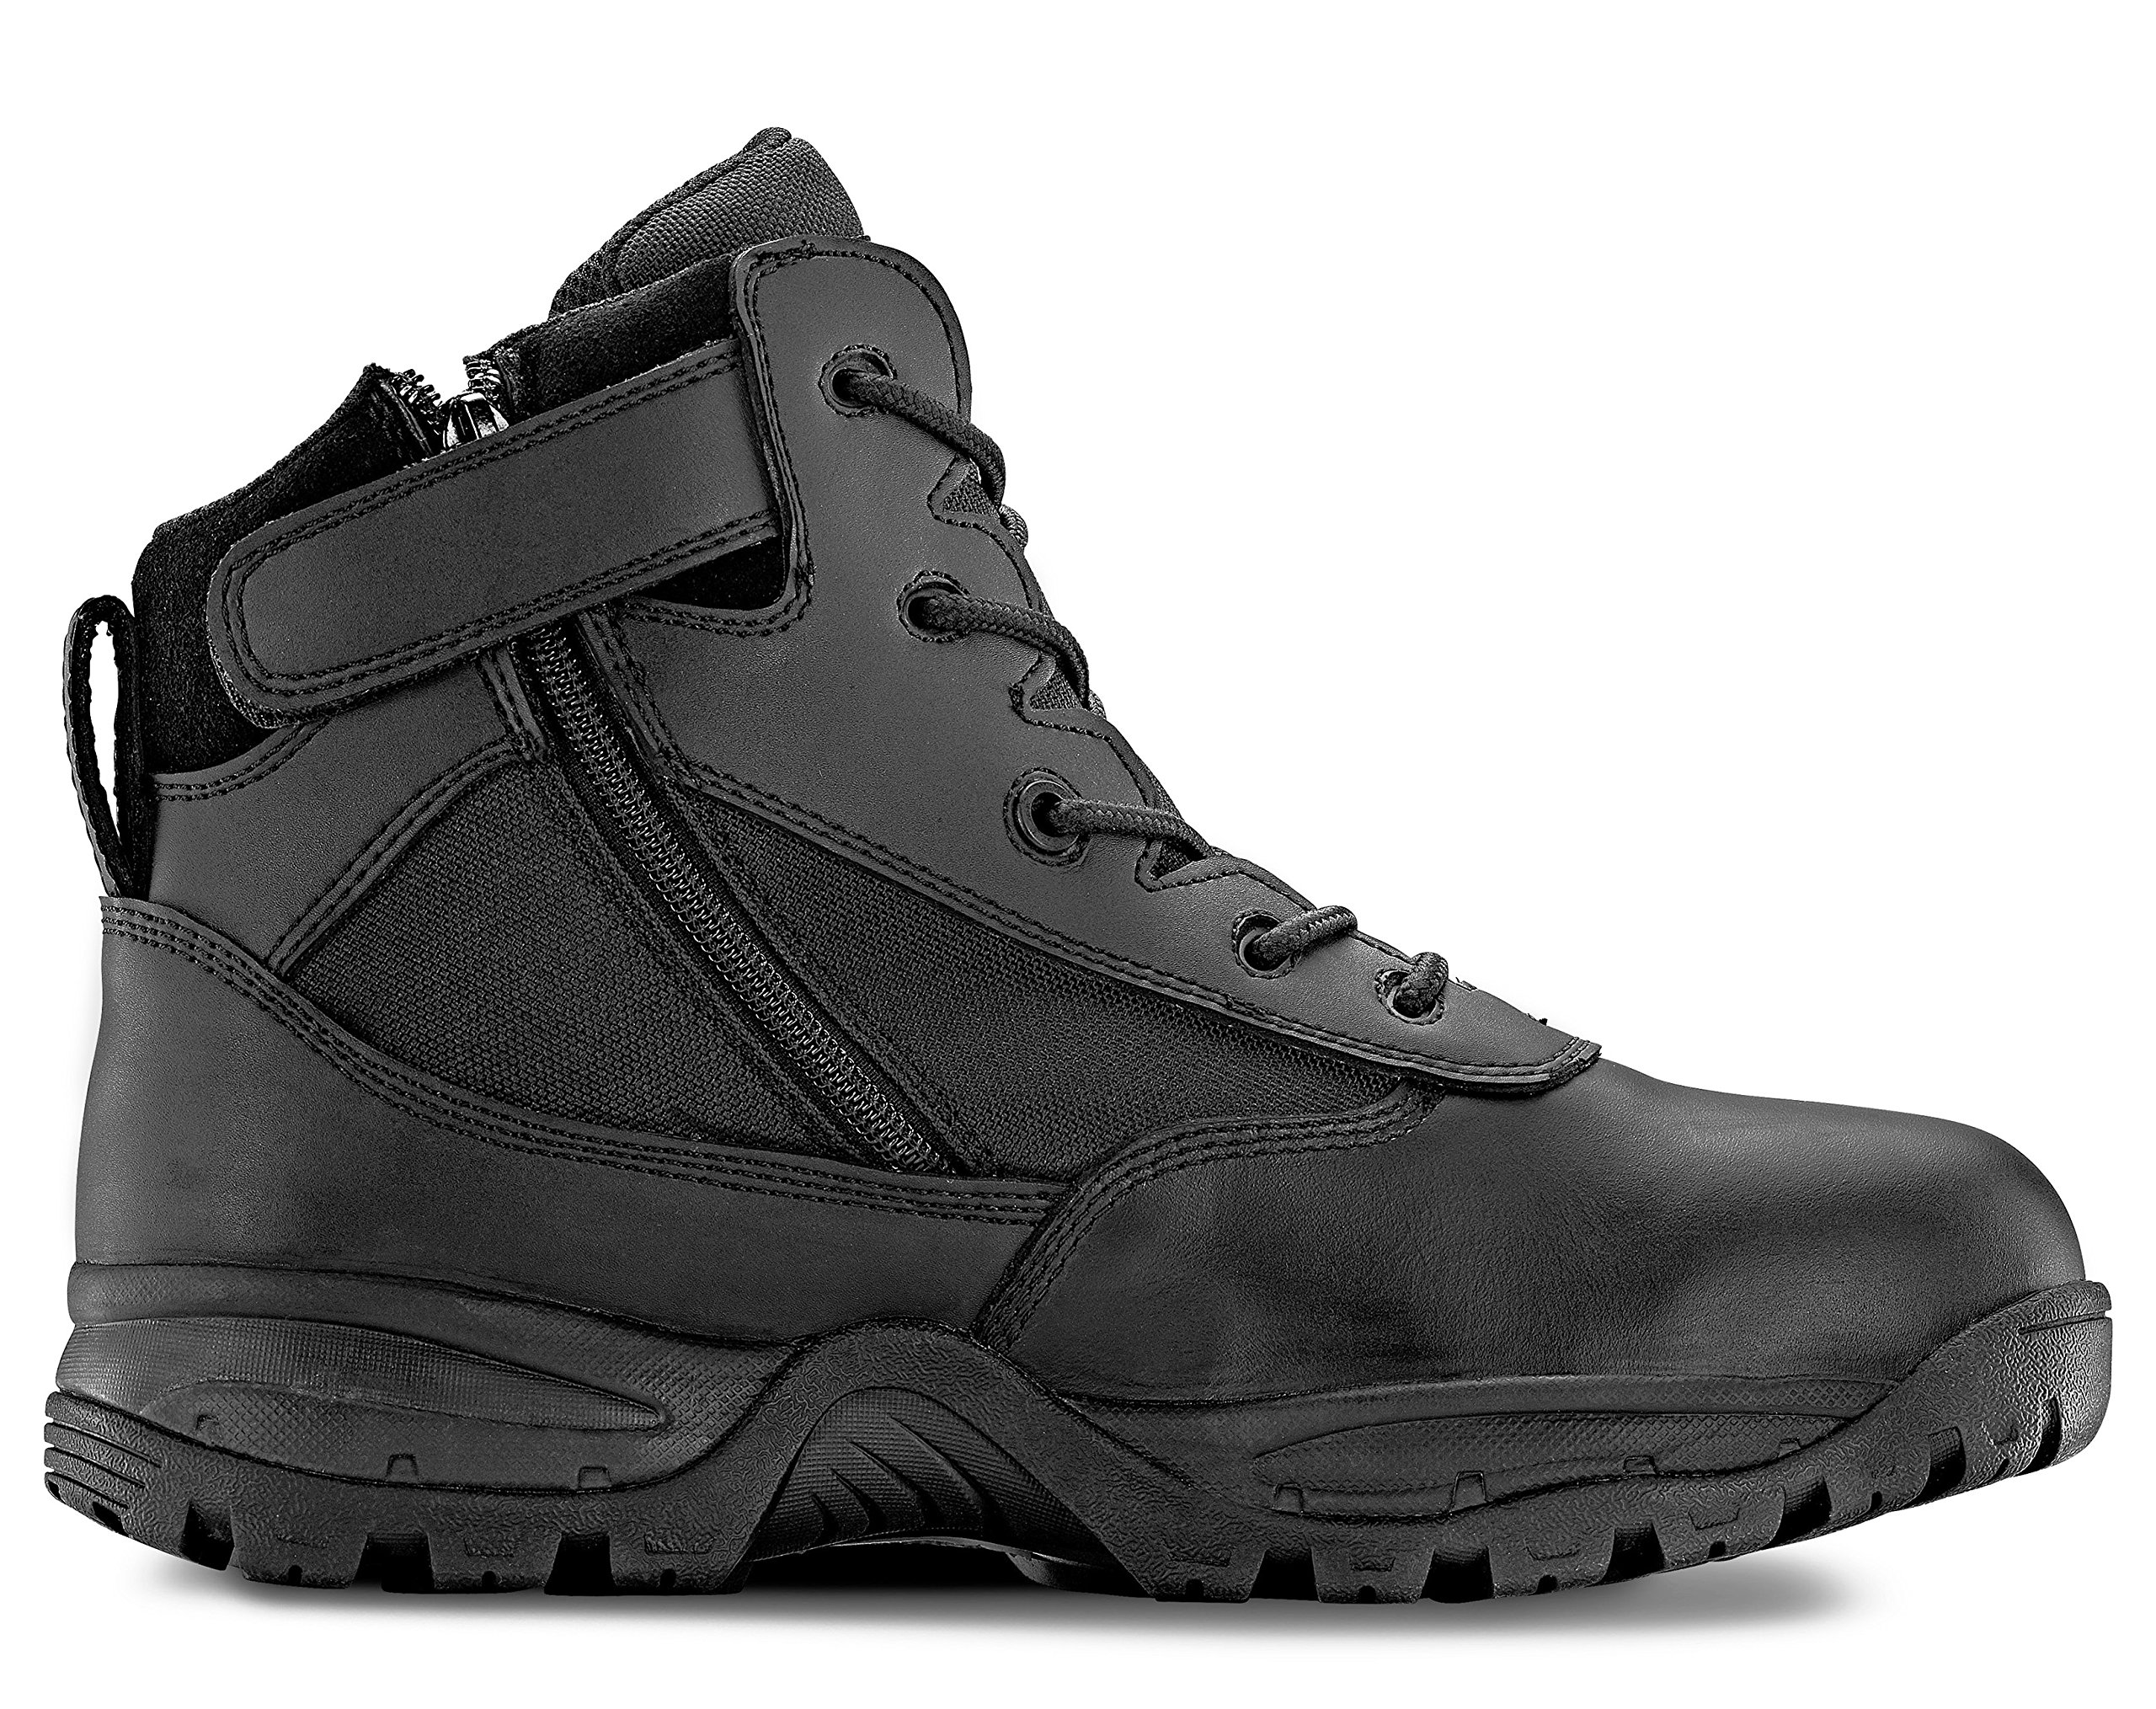 Maelstrom Men's PATROL 6'' Black Waterproof Boots with Zipper for Work, Law Enforcement, Tactical, Security and Military | Waterproof, Breathable, Comfortable | One Year Warranty, Size 8W by Maelstrom